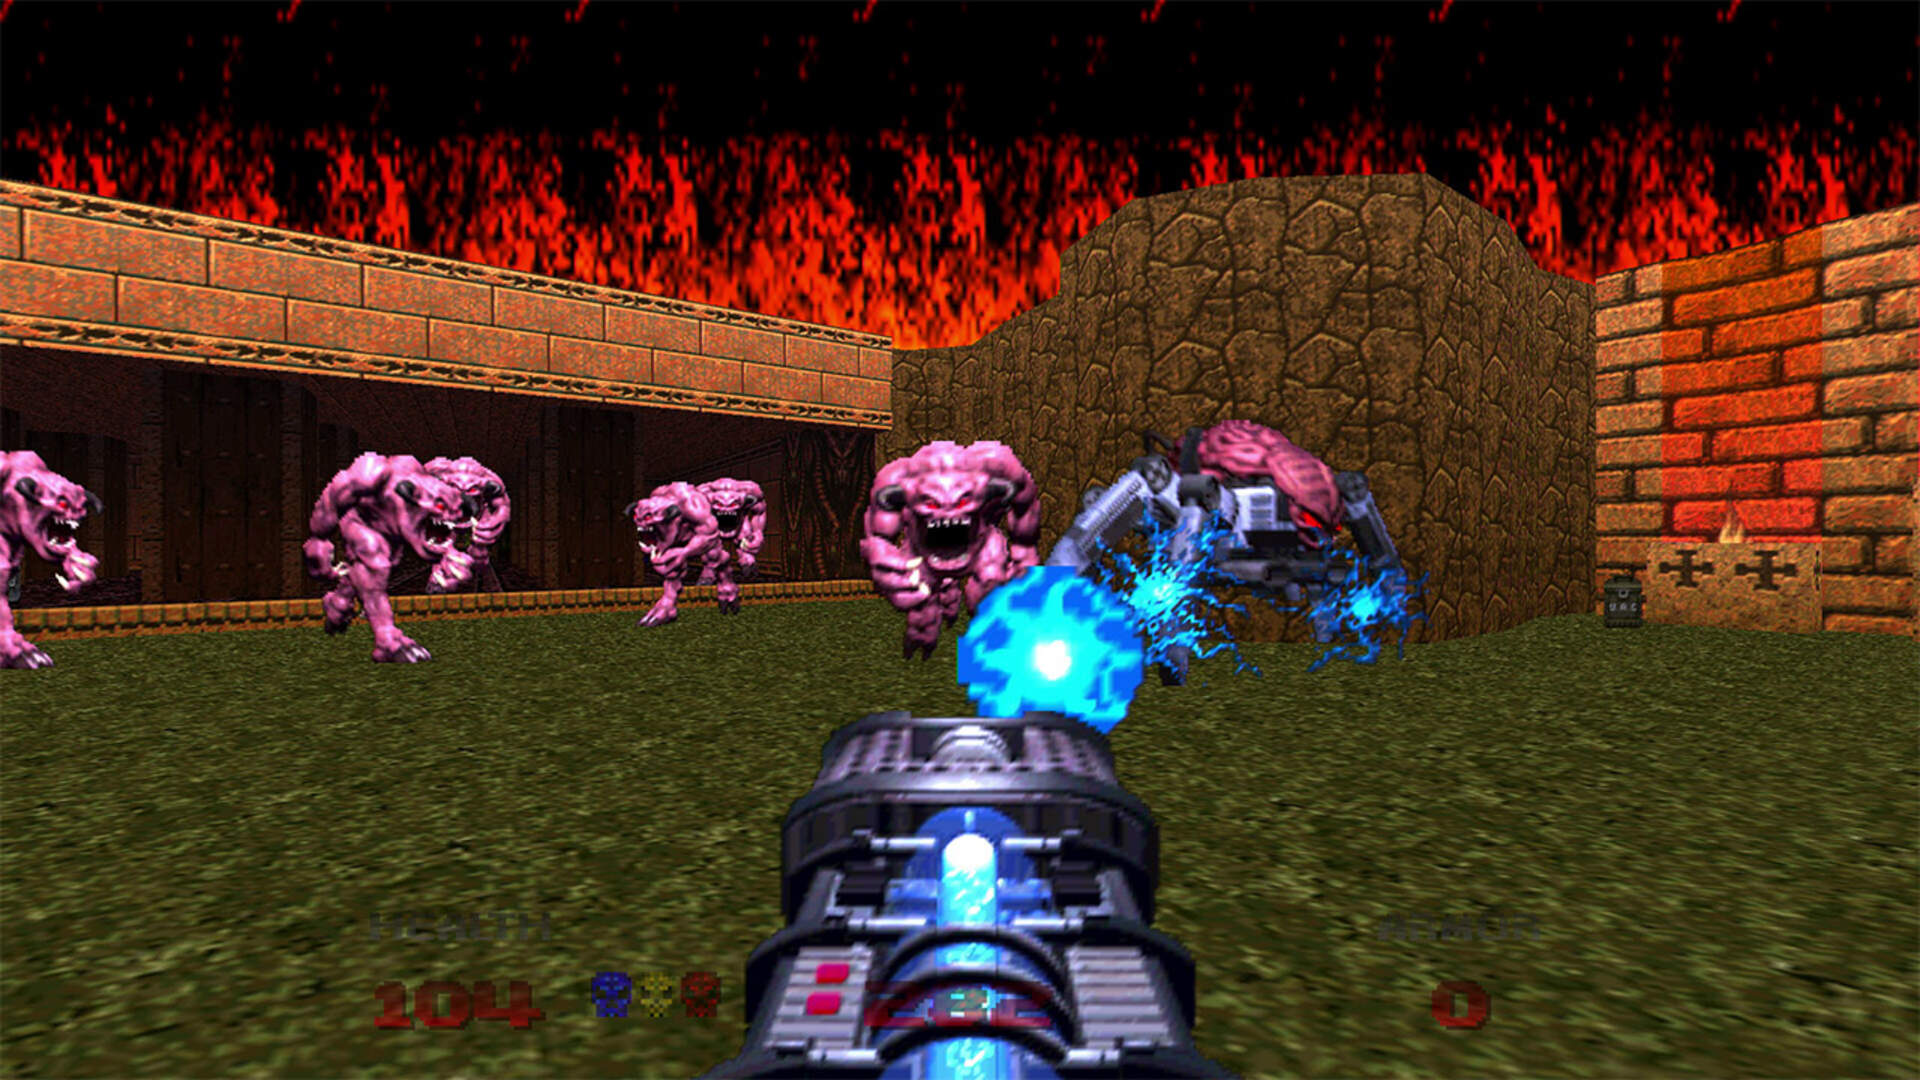 Doom 64 Port Gets New Trailer, Will Release as Pre-Order Bonus Alongside Doom Eternal